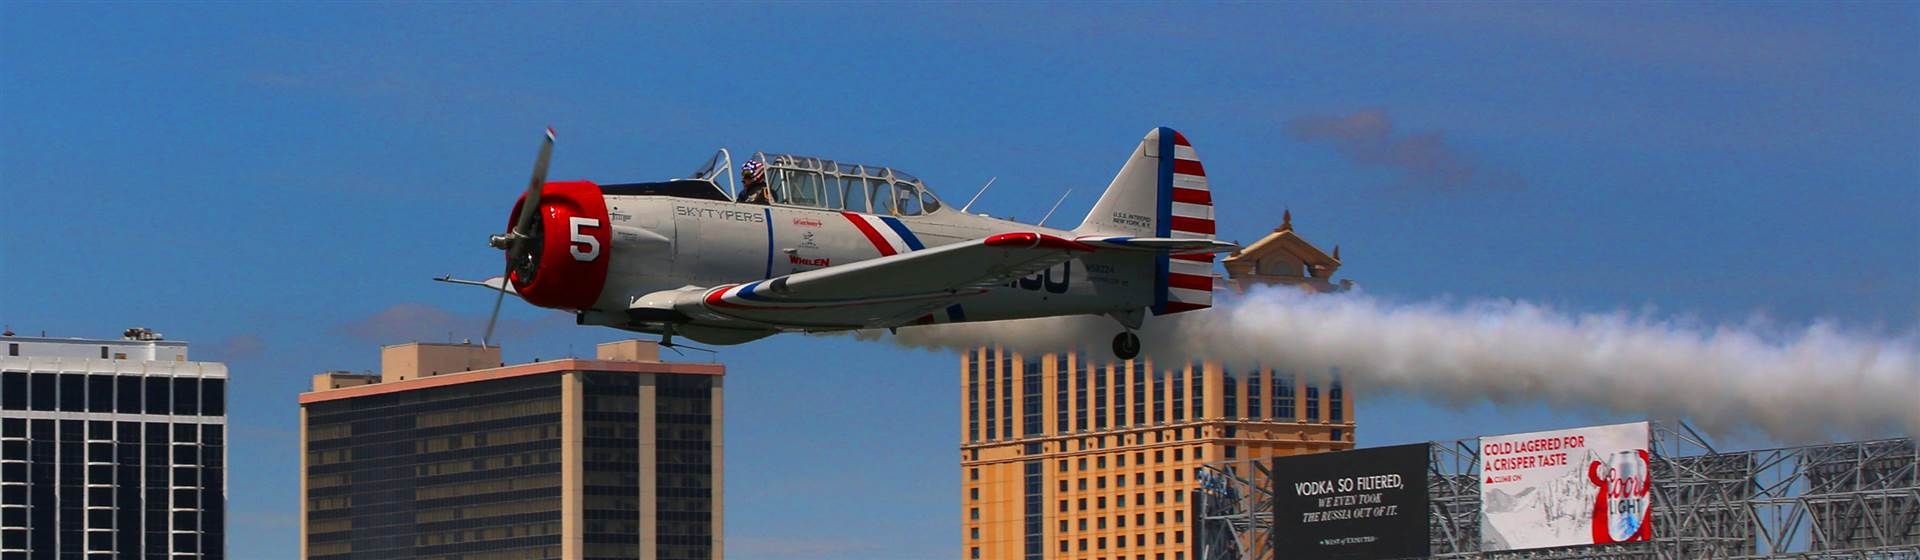 Atlantic City Airshow, Thunder over the Boardwalk!